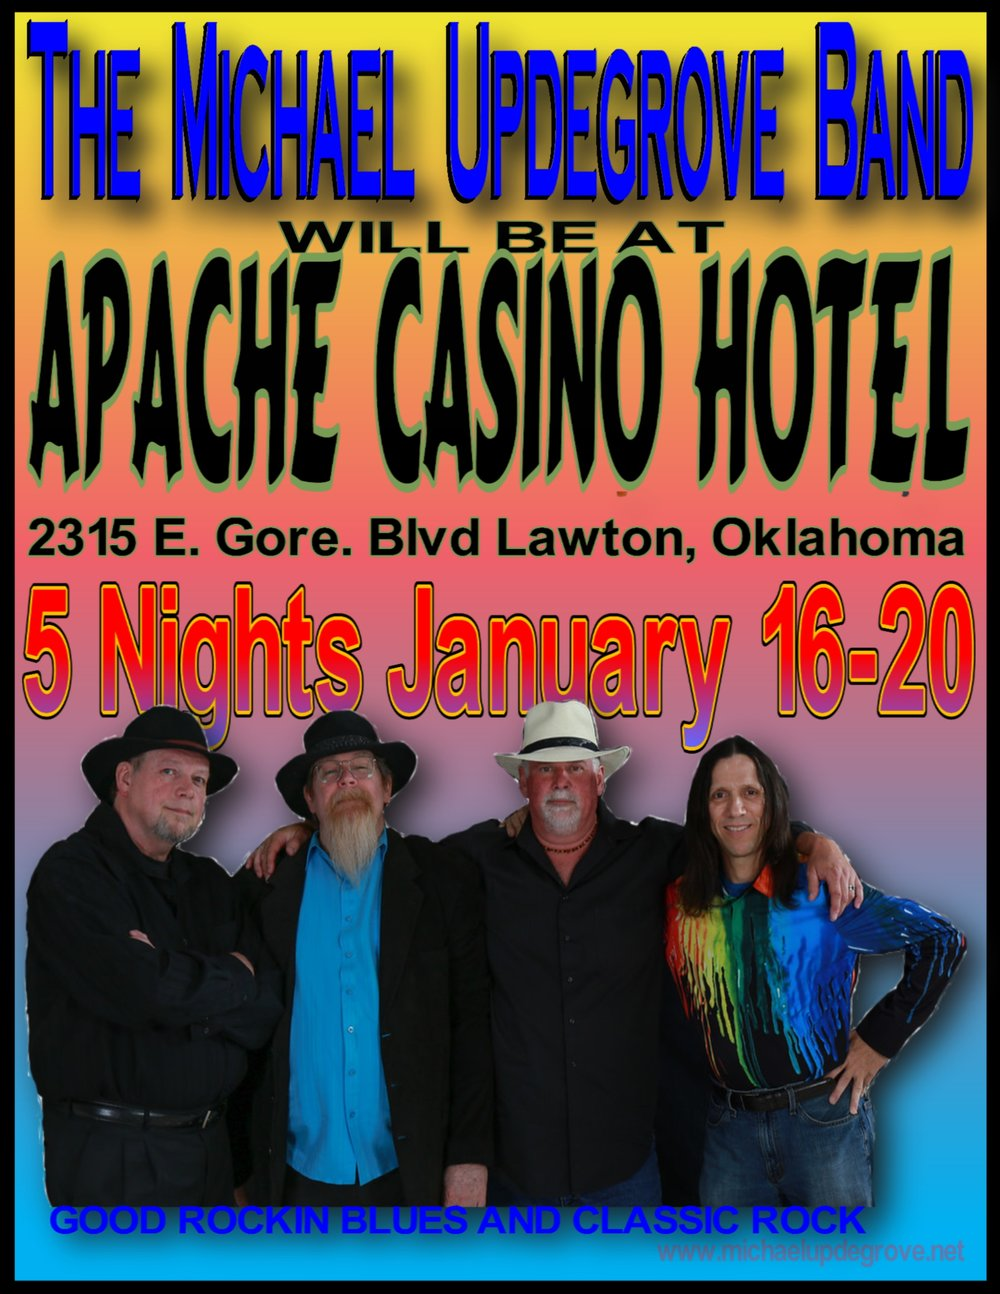 The Apache Casino January 2018.jpg